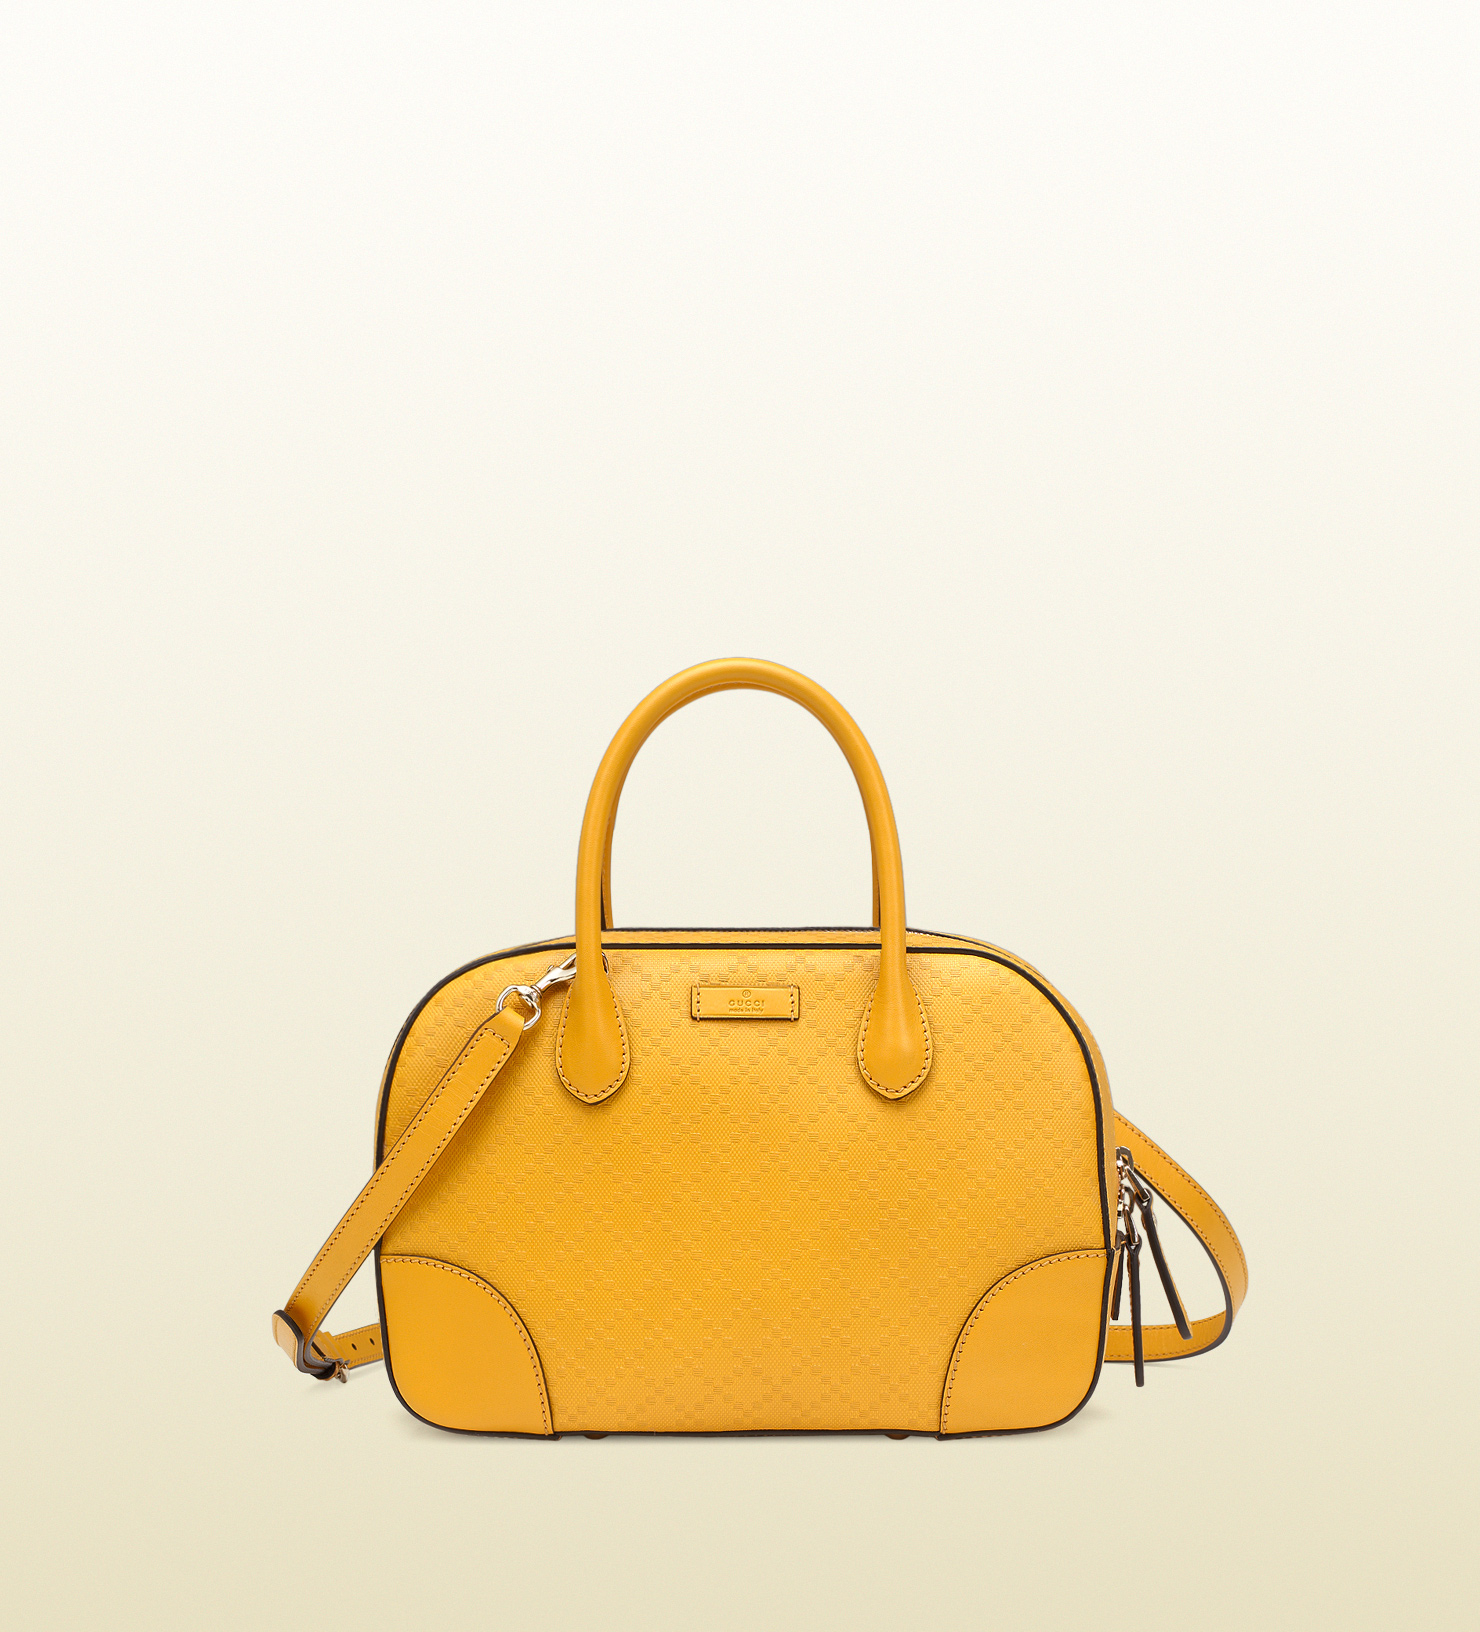 9c35554c3b0 Lyst - Gucci Bright Diamante Leather Top Handle Bag in Yellow